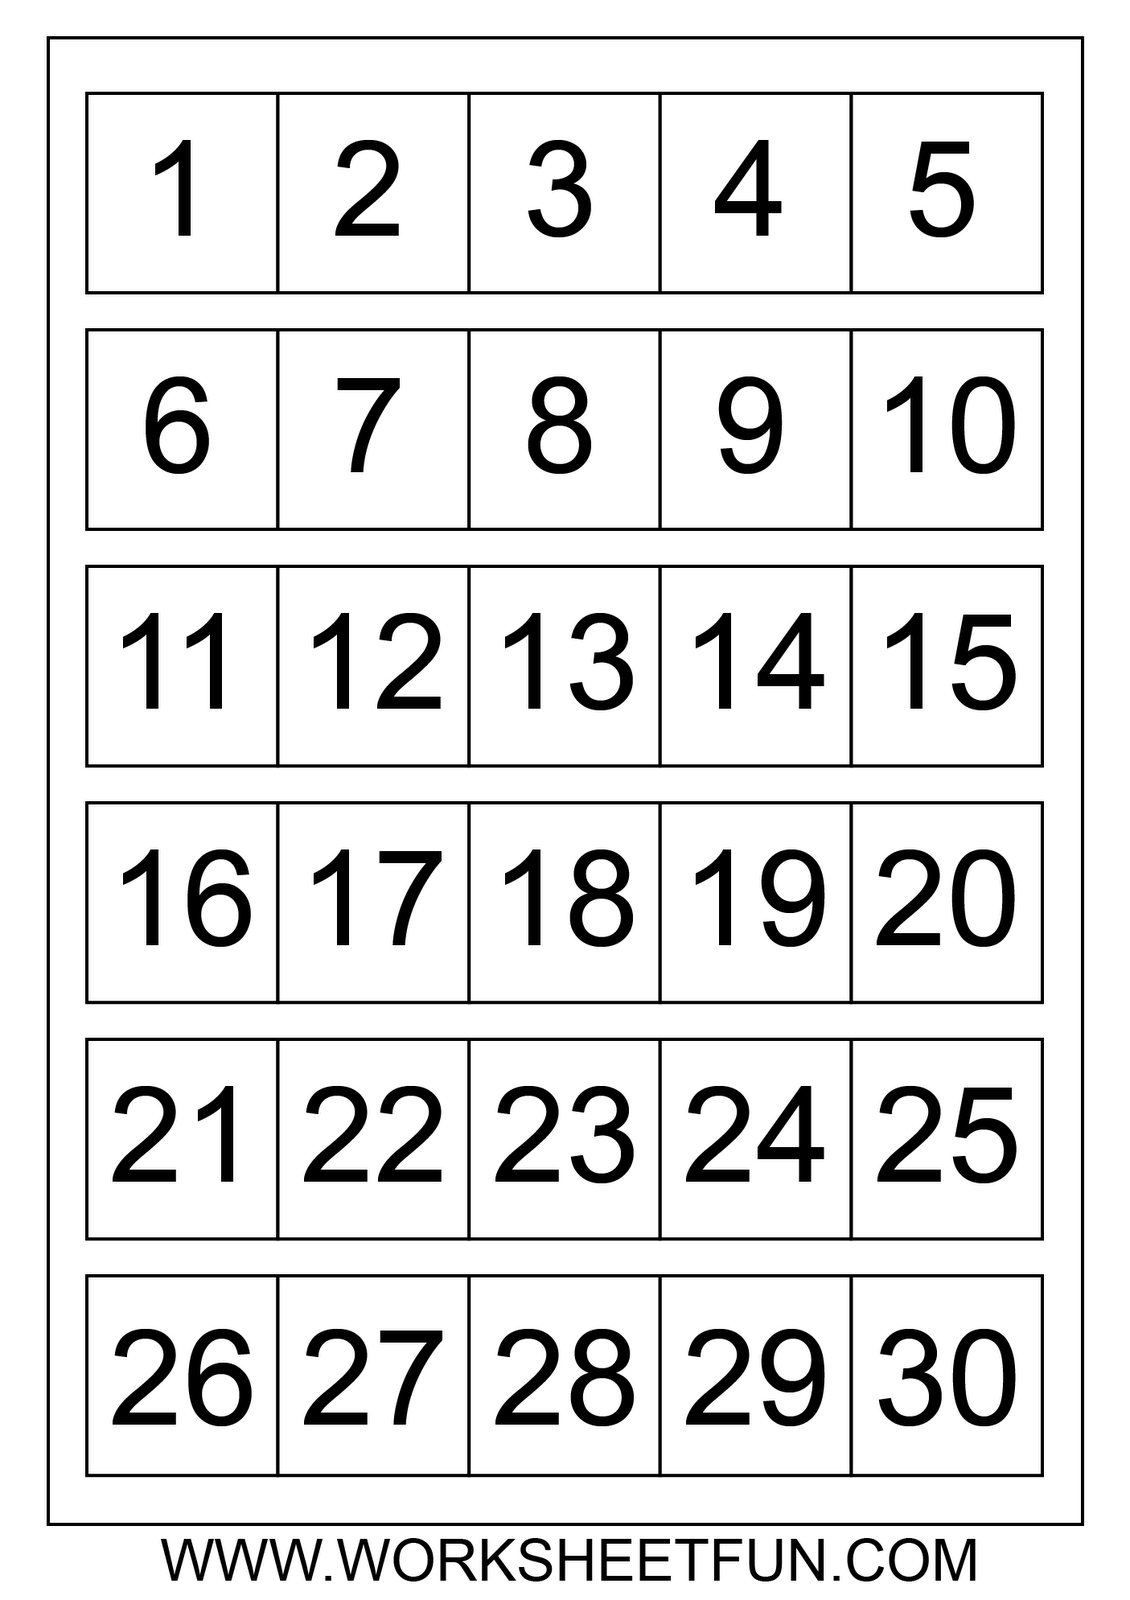 Large Printable Numbers 1 100 | To Dot With Numbers Printable - Free Printable Table Numbers 1 30